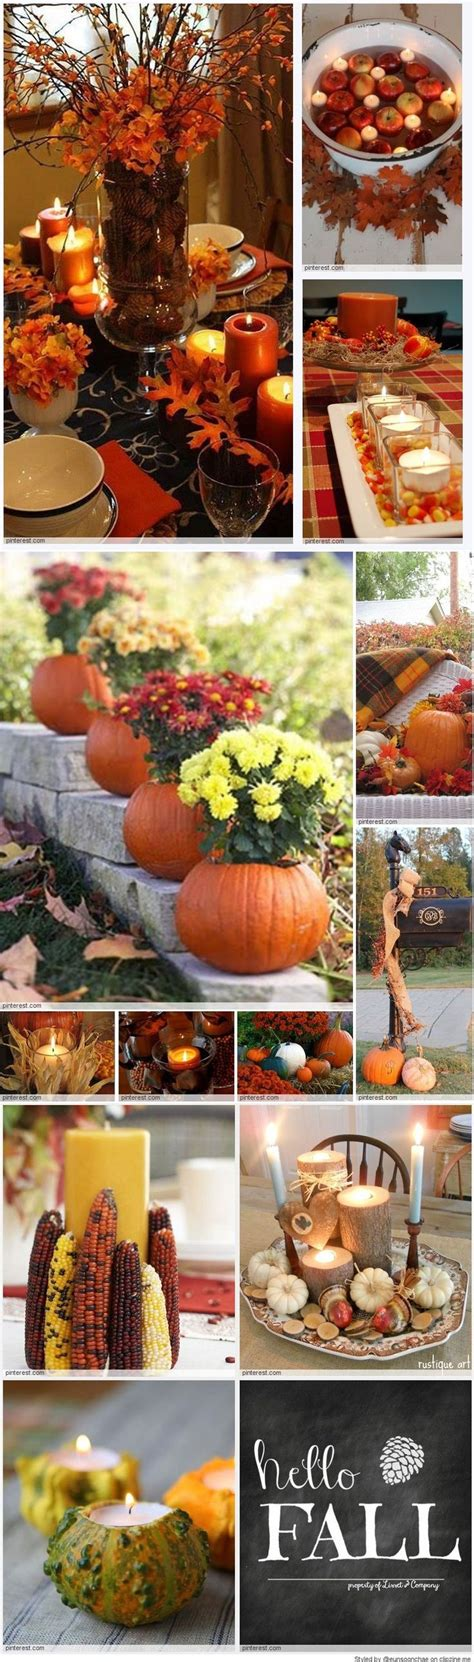 fall decorating ideas amazing interior design